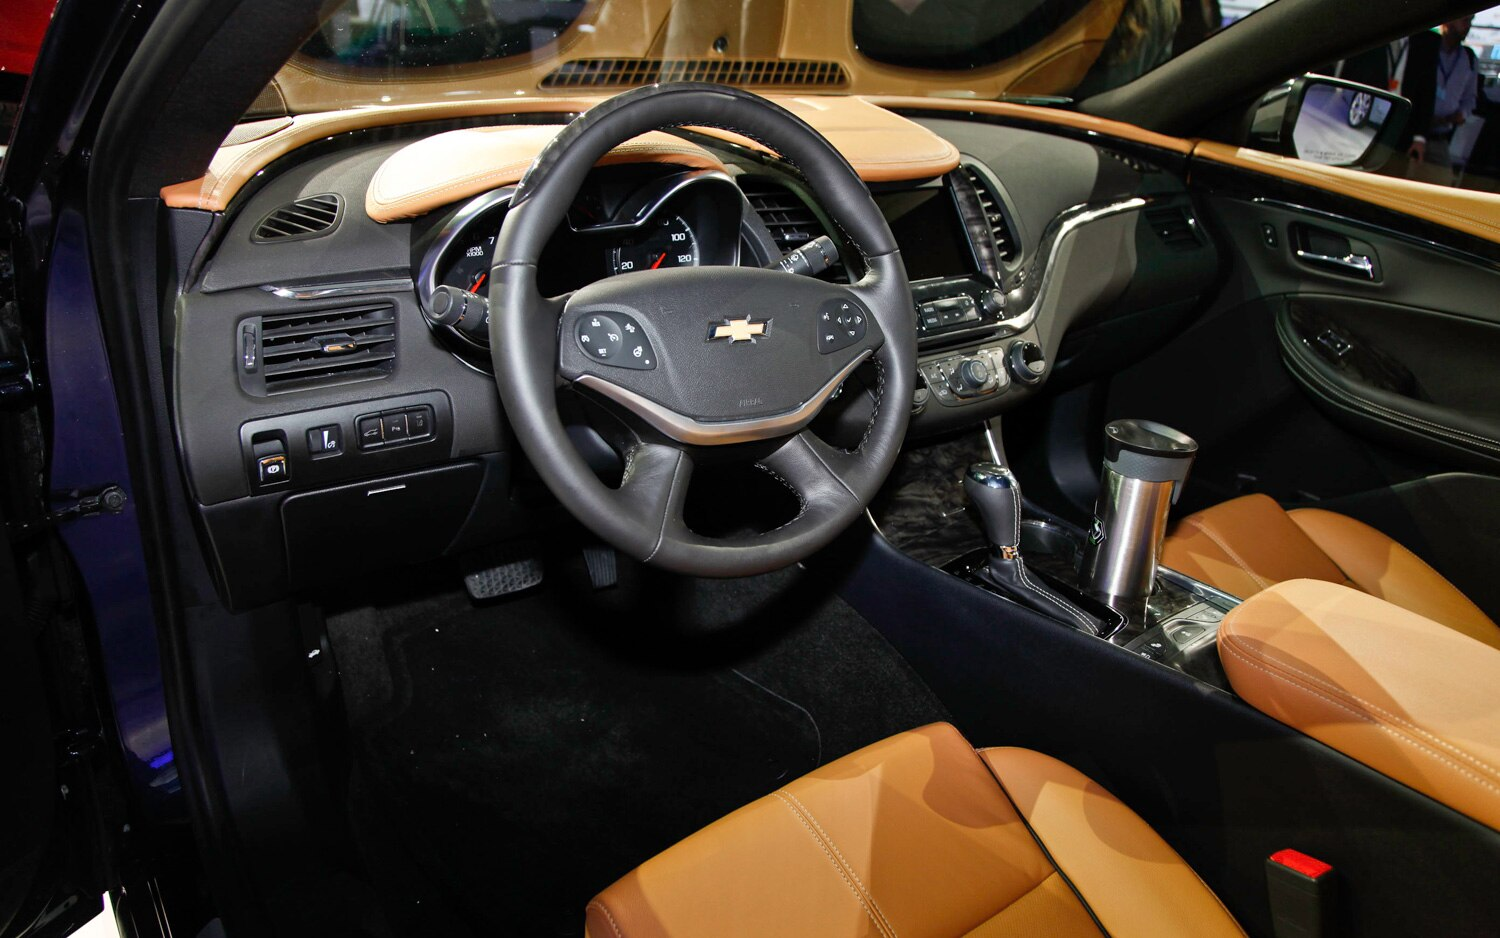 Impala 2014 Interior Images Galleries With A Bite